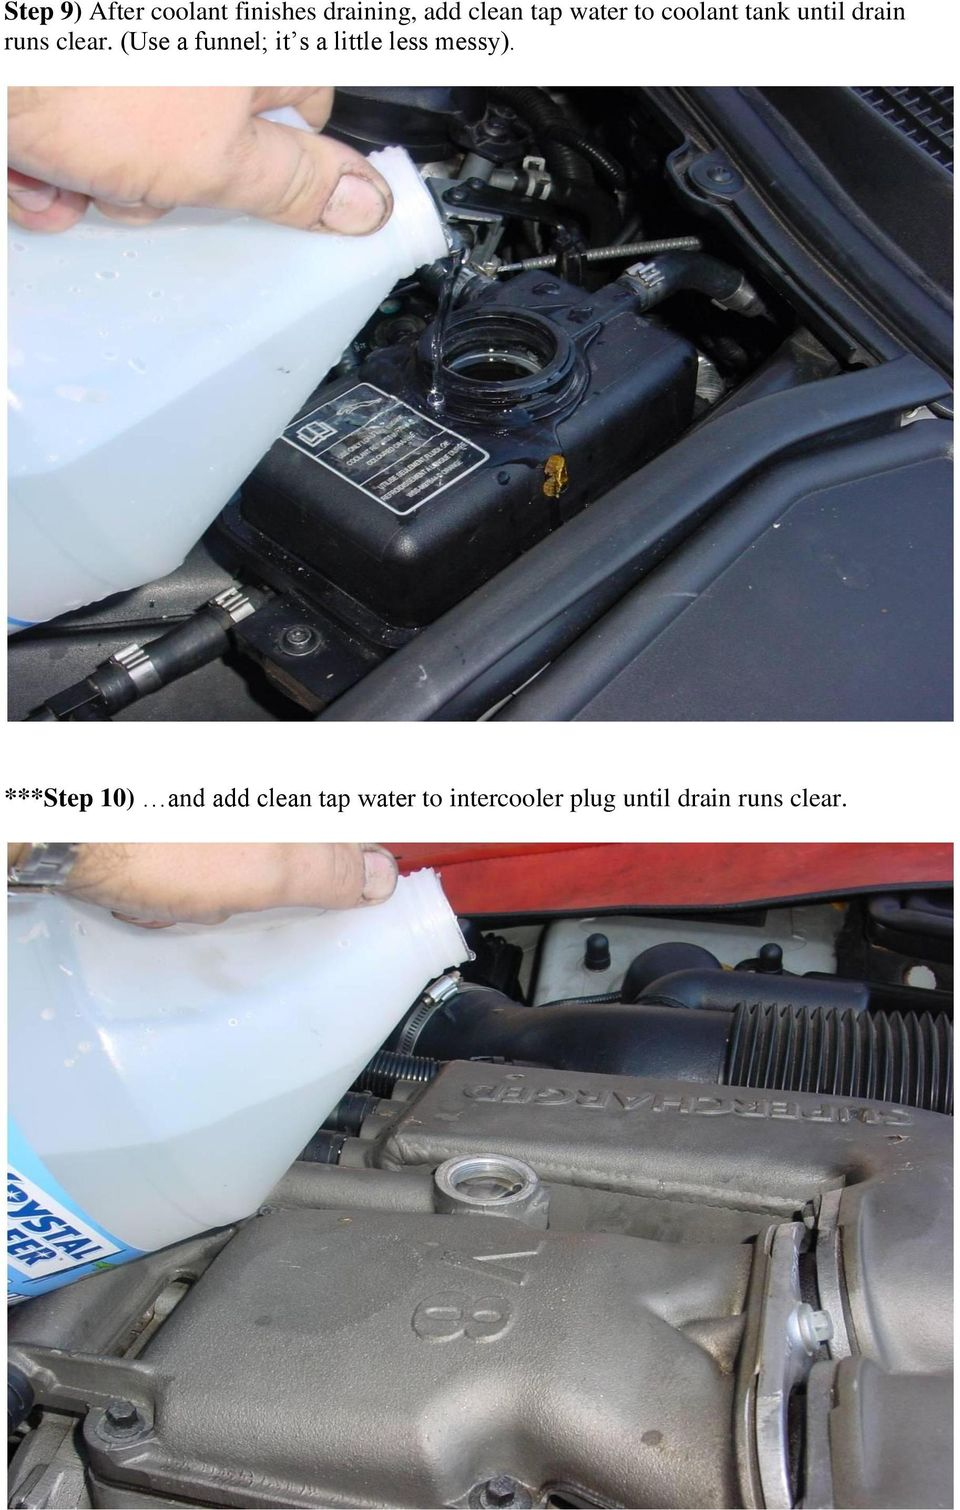 Xk Coolant Flush And Fill Thermostat Replacement Pdf Vw Engine Bottle Use A Funnel It S Little Less Messy